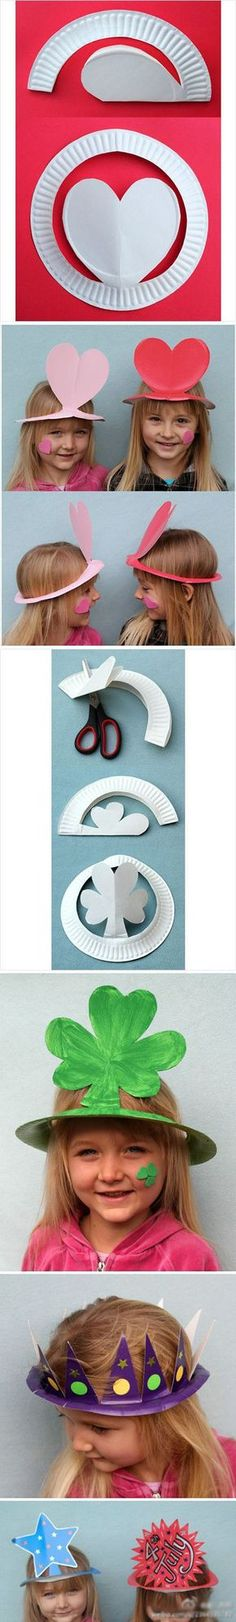 Easy Craft For Child | DIY & Crafts Tutorials  I hate Valentines Day but I would totally do this lol :)